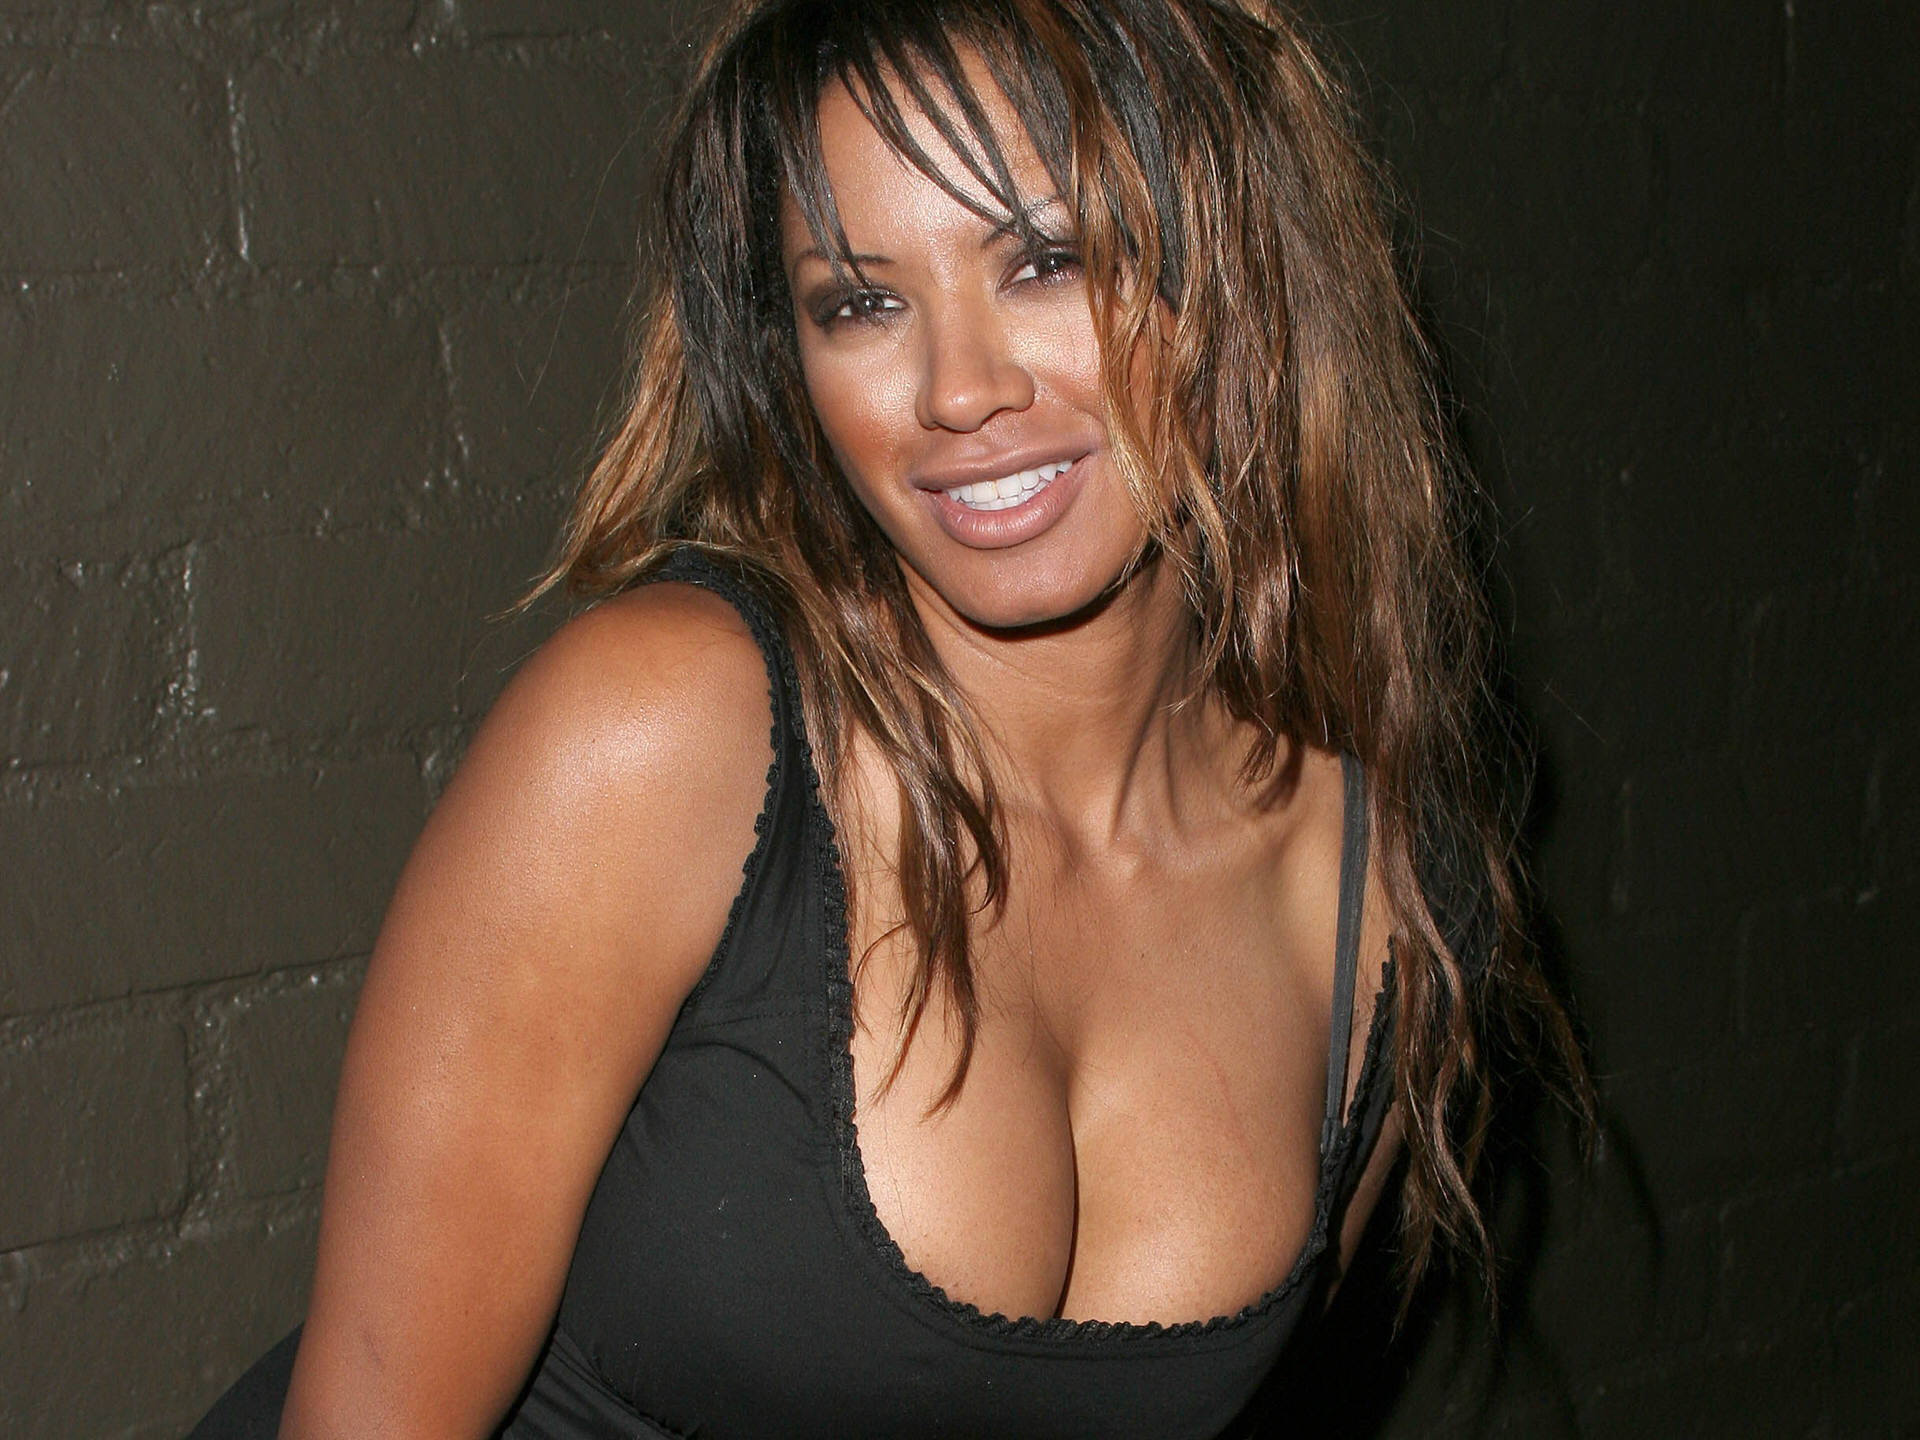 Traci Bingham HQ wallpapers